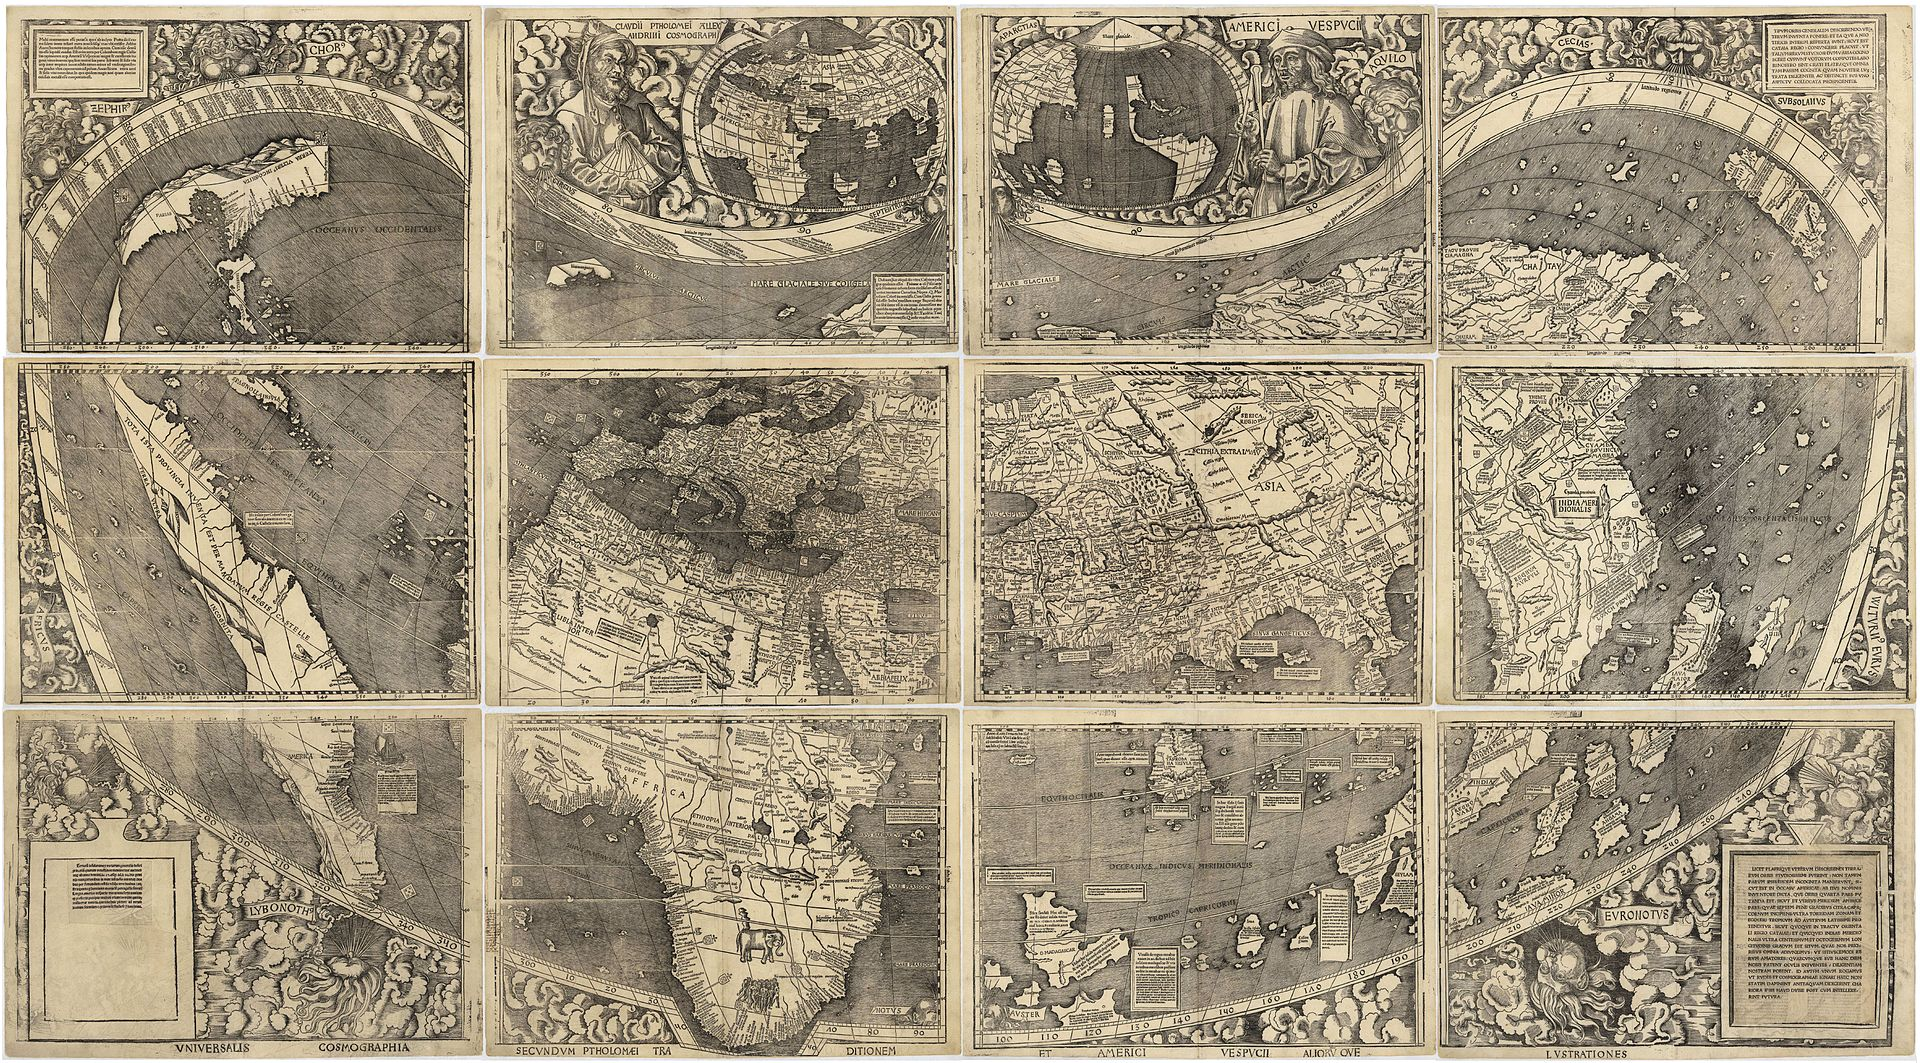 "artin Waldseemüller (1470-1520), ""Universalis Cosmographia"", Waldseemüller's 1507 world map which was the first to show the Americas"